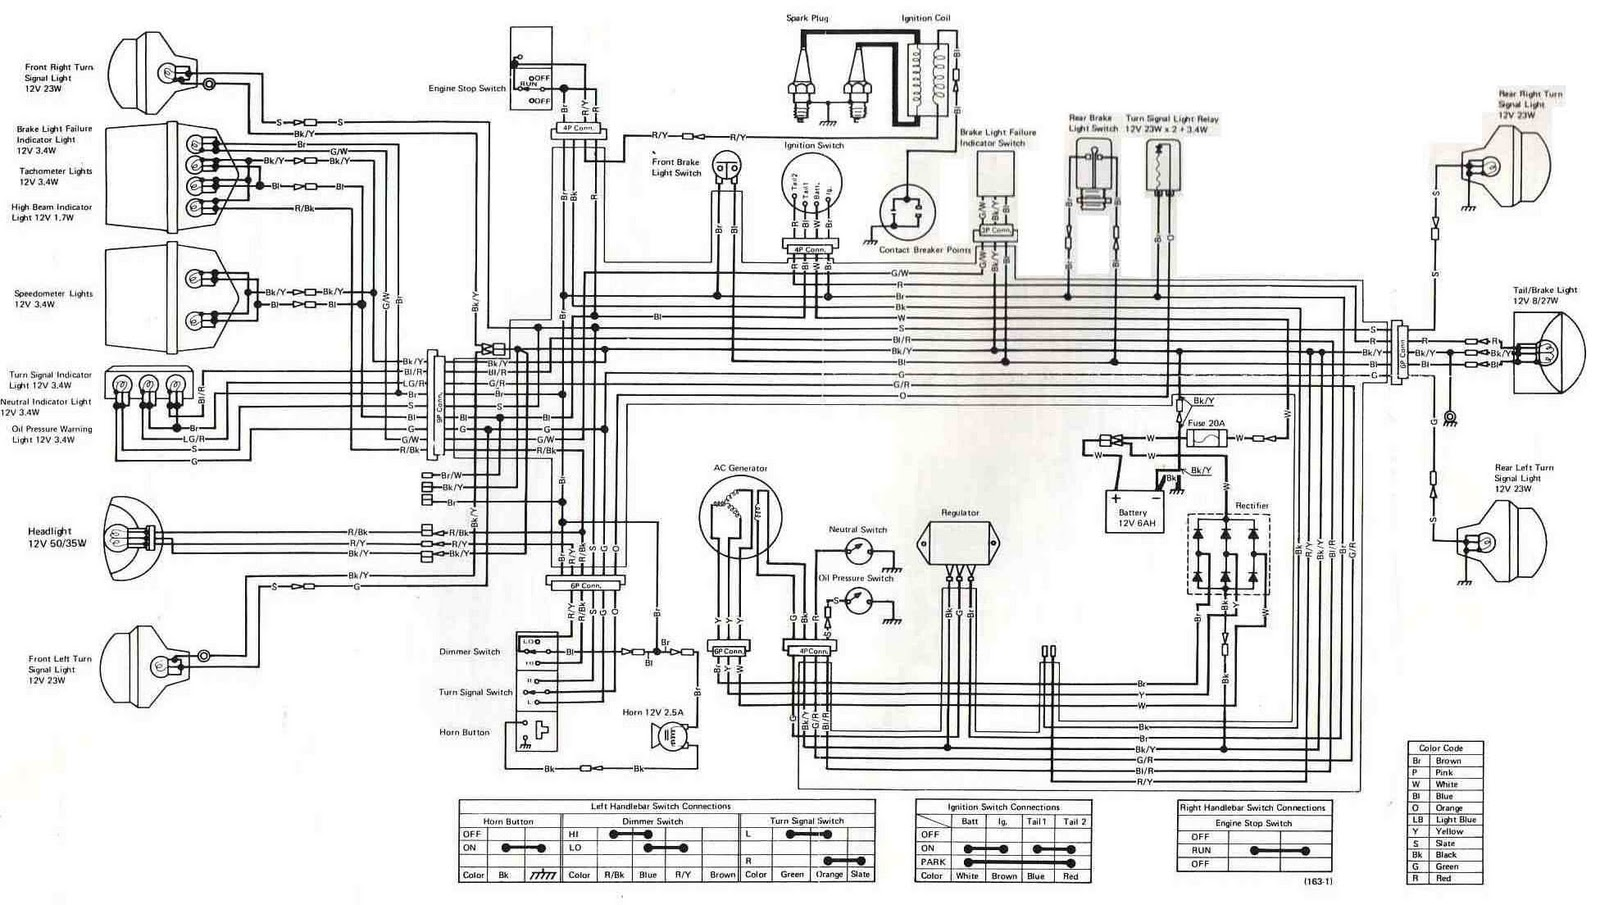 Kawasaki KZ400 1975 Electrical Wiring Diagram | All about Wiring ...